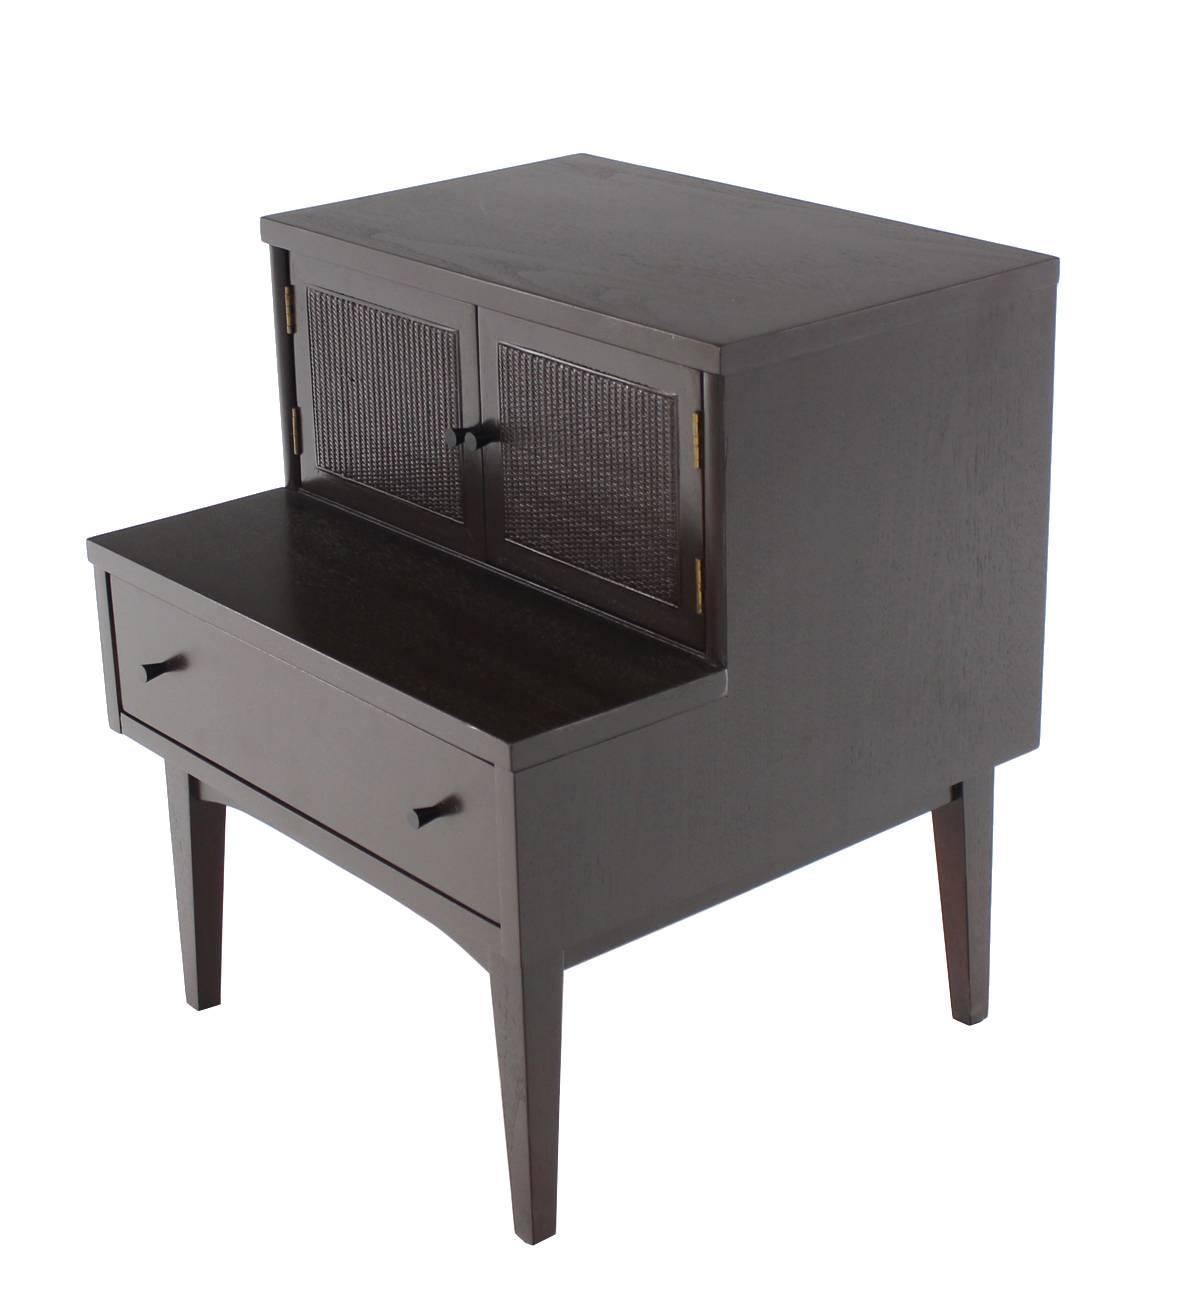 Pair Of Mid Century Modern Nightstands For Sale At 1stdibs. Full resolution  image, nominally Width 1178 Height 1292 pixels, image with #5D5852.